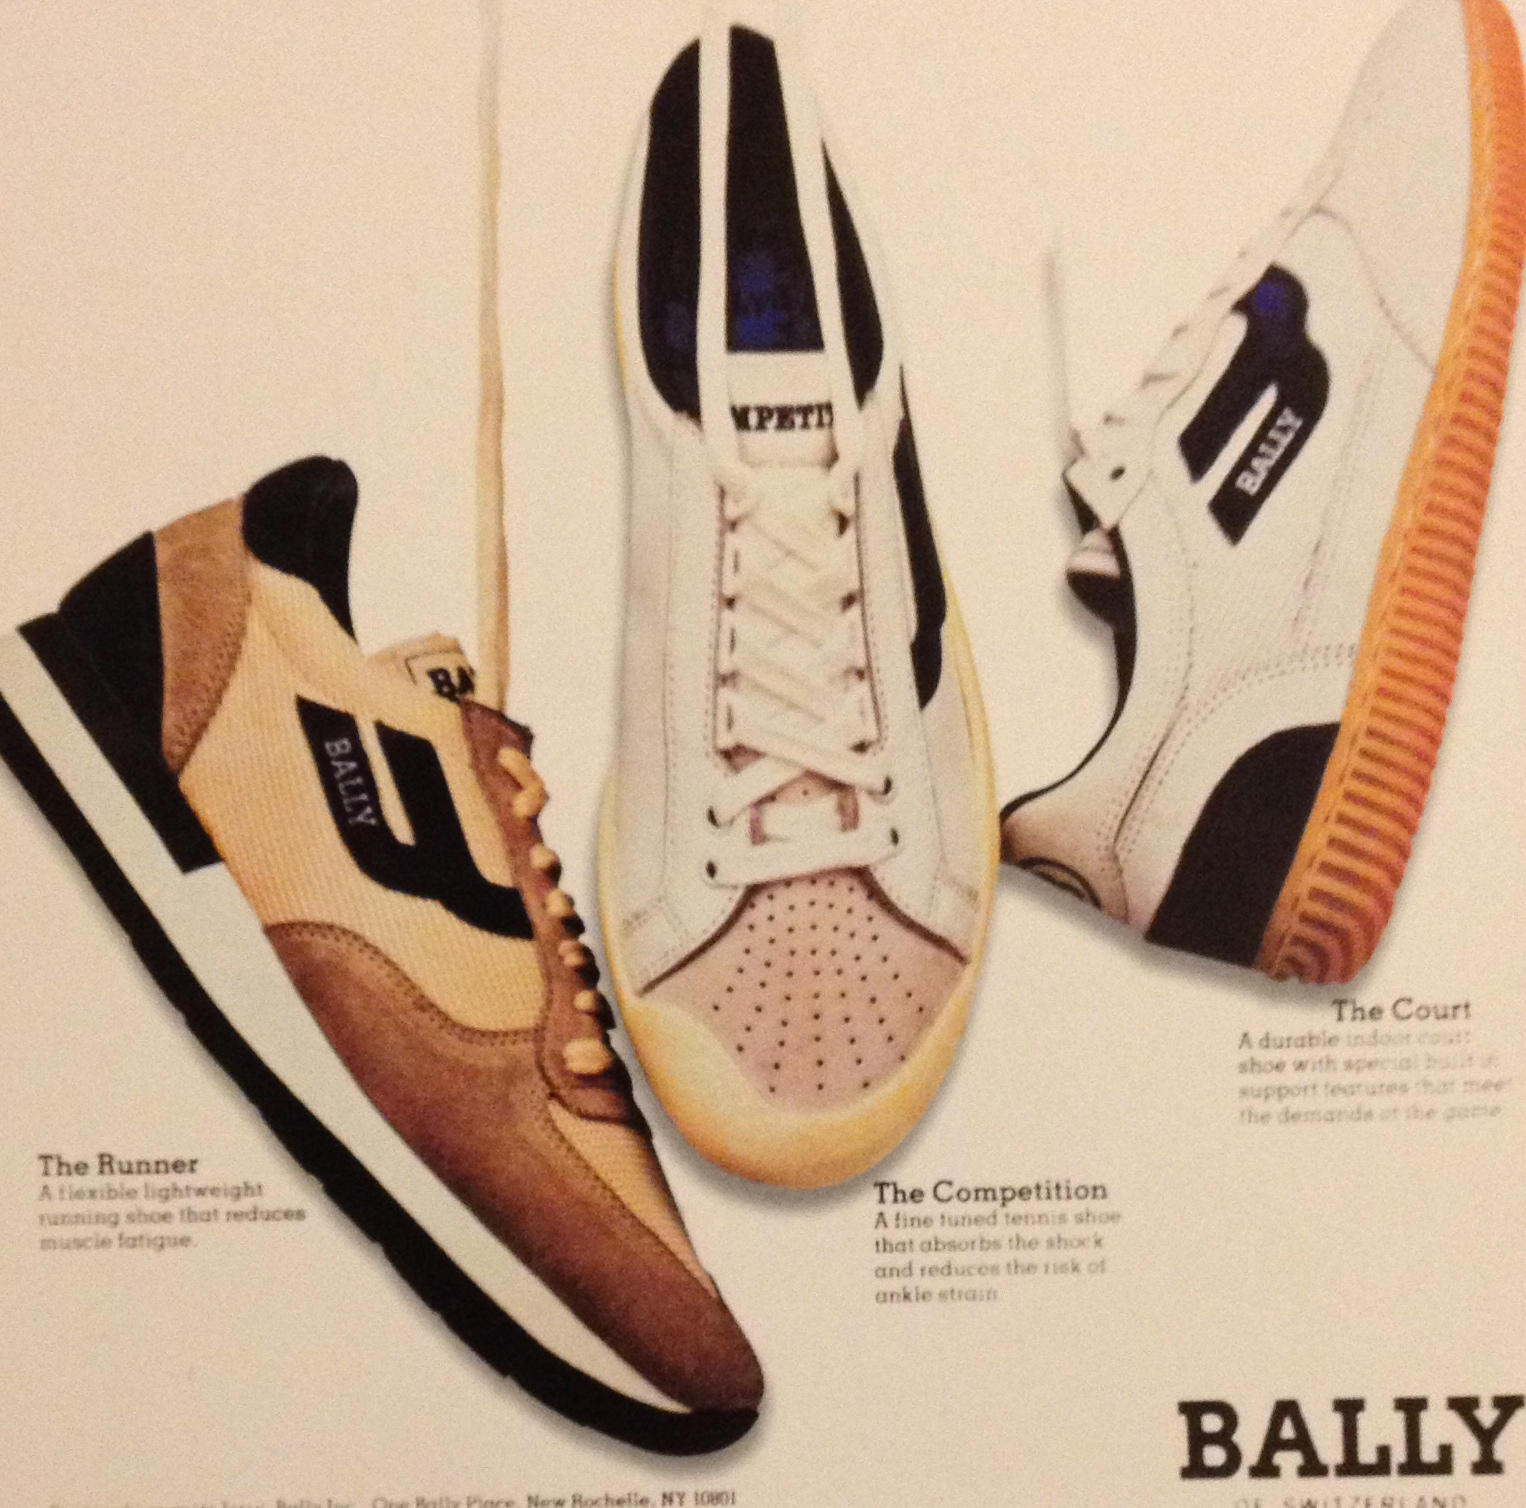 Bally classic sneakers largest supplier online largest supplier cheap online For sale online 9f0OL